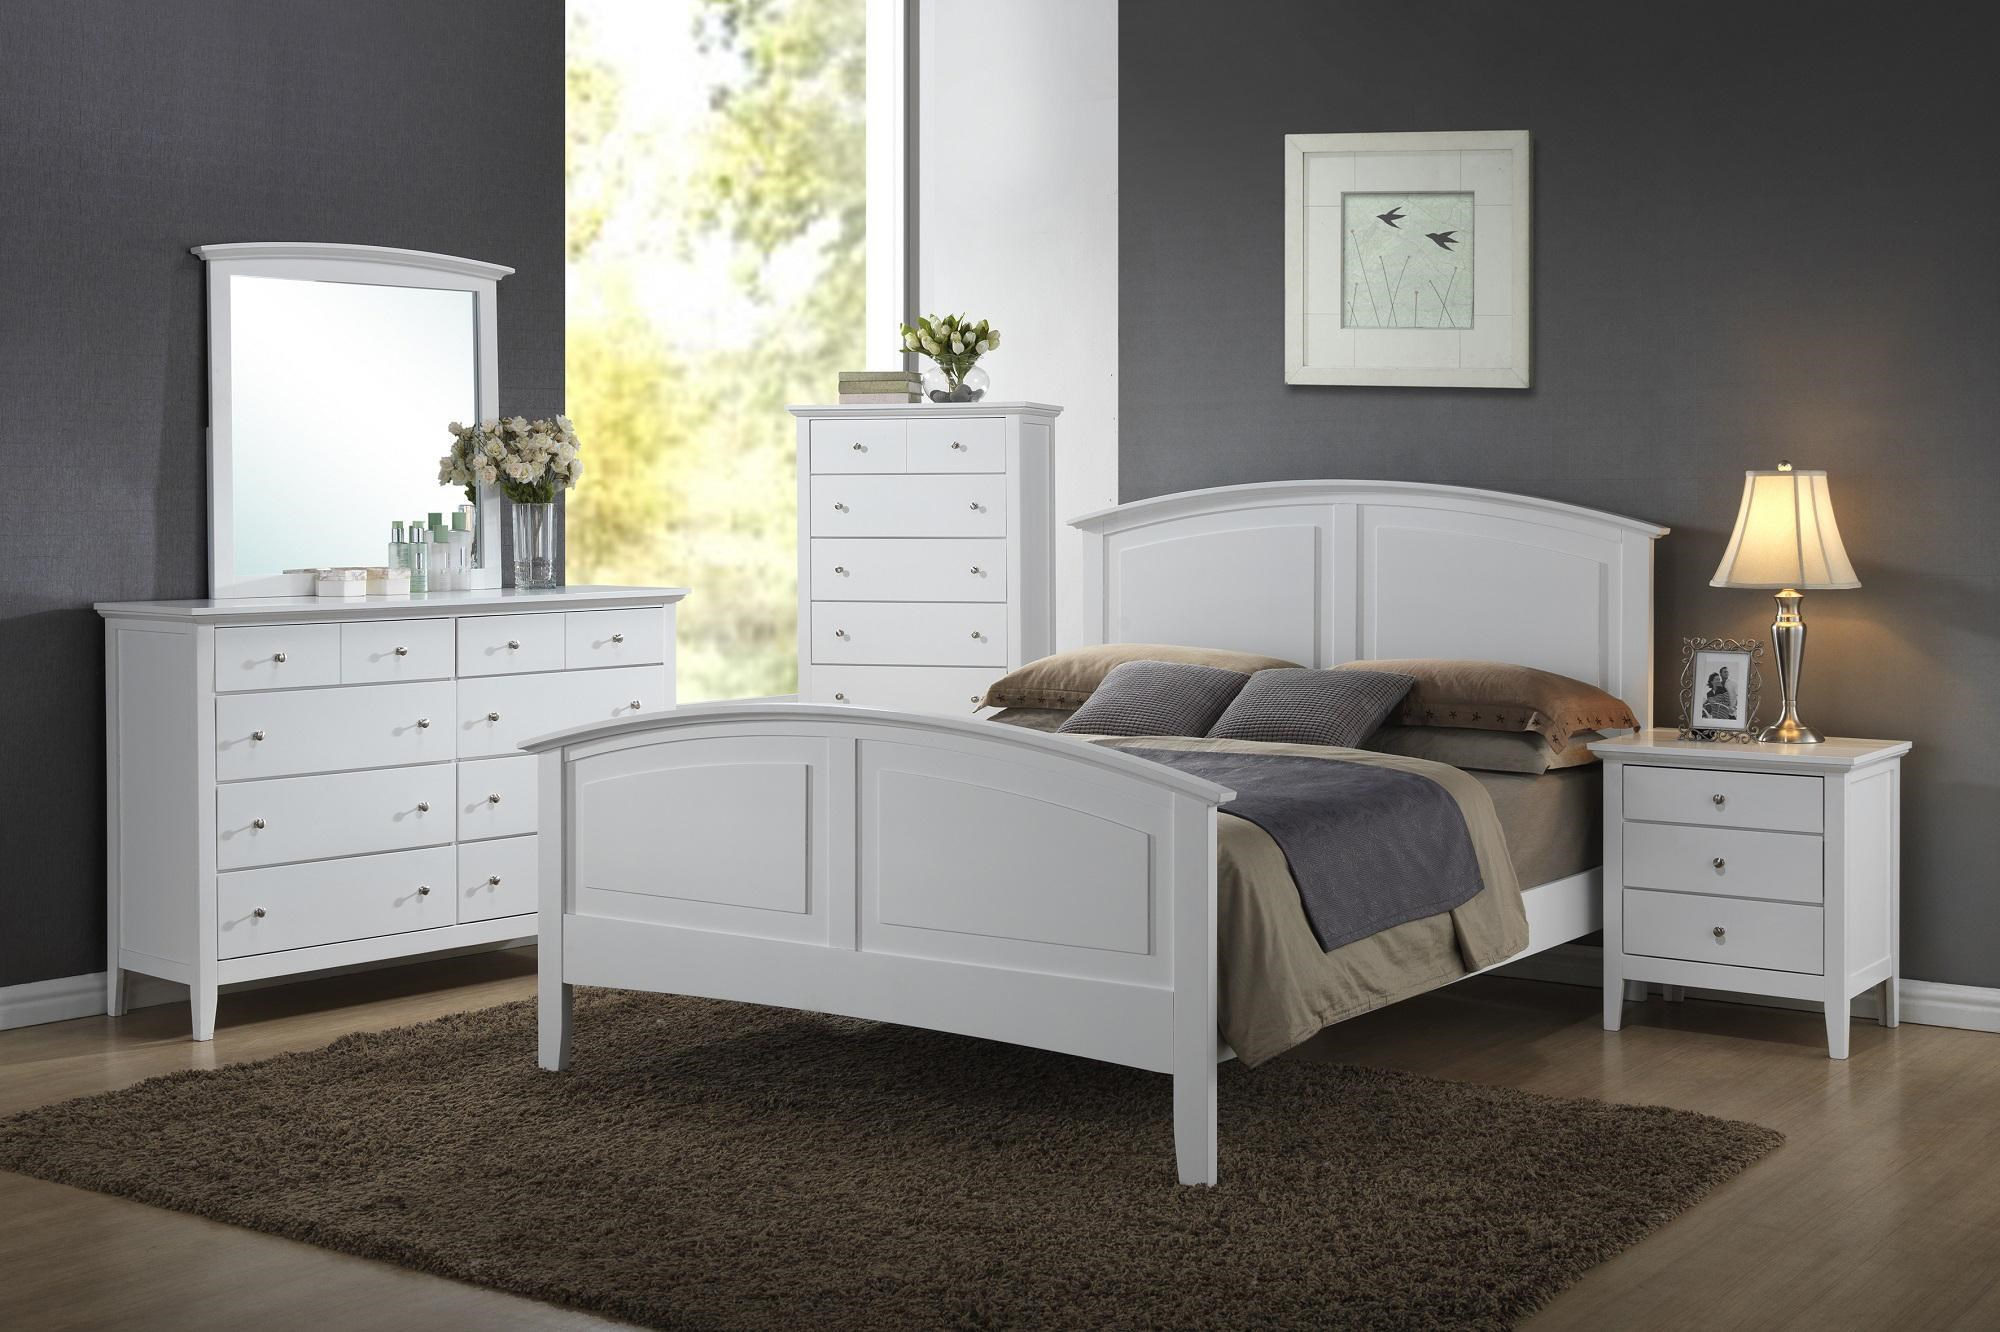 C3226A 5 Piece Twin Bedroom Group by Lifestyle at Sam Levitz Furniture